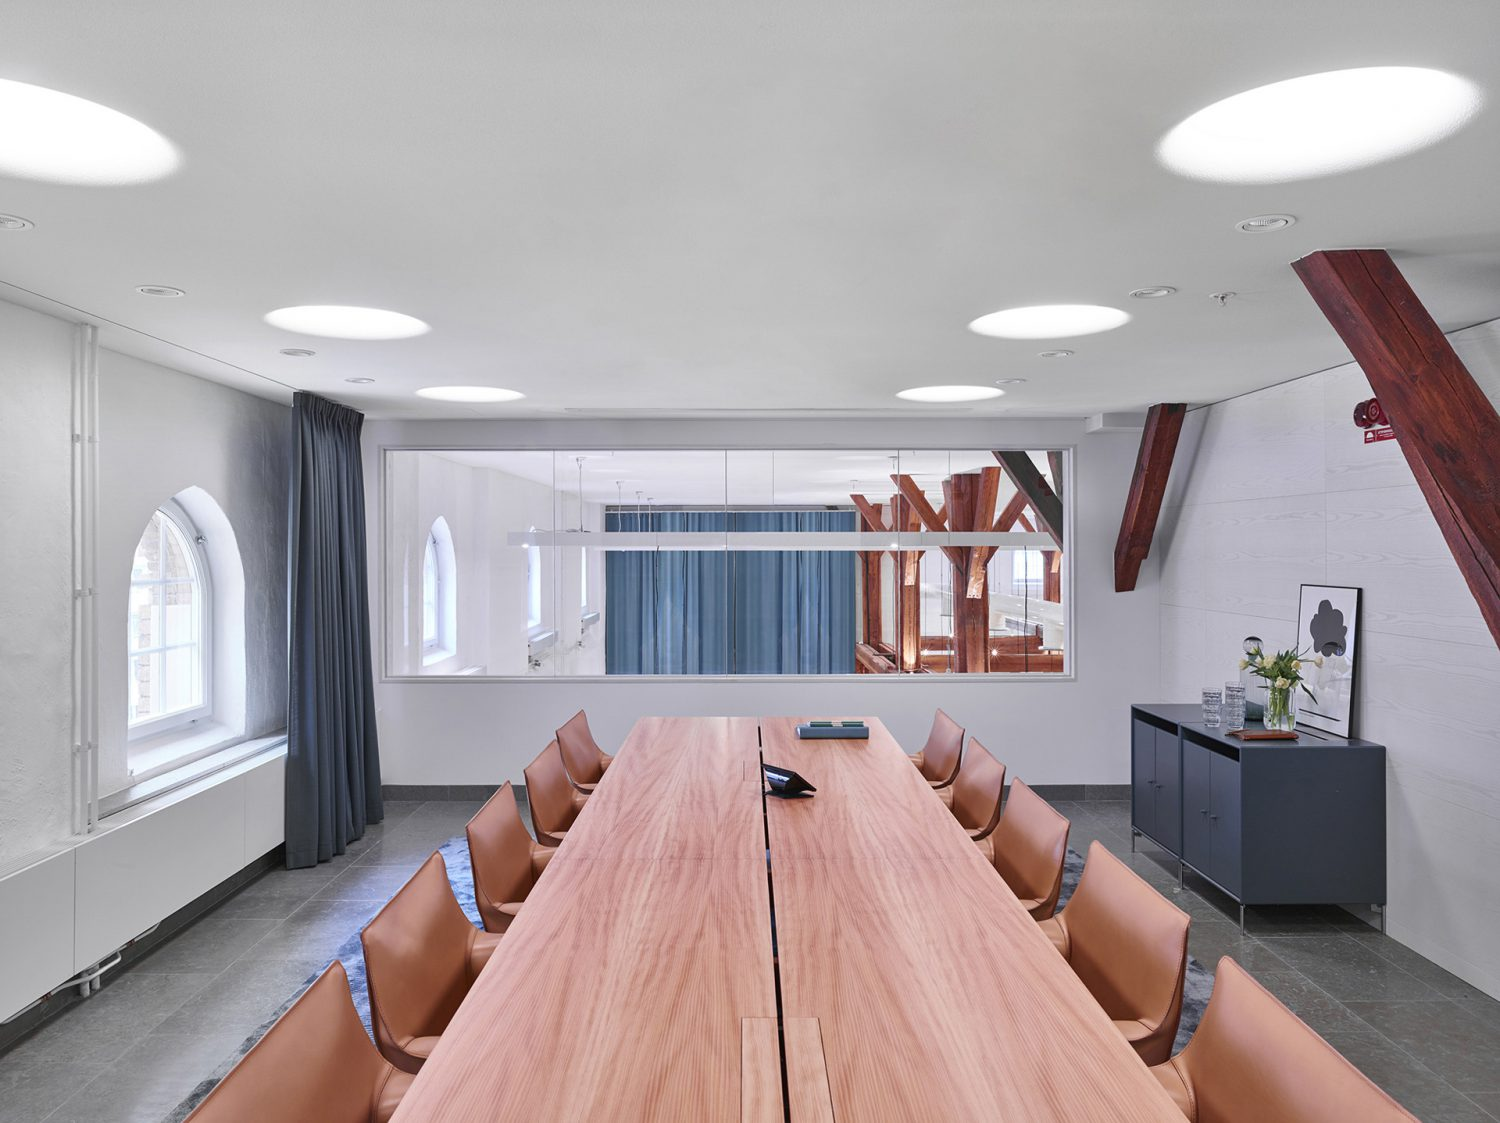 Meeting room with salmon colored tables and chairs